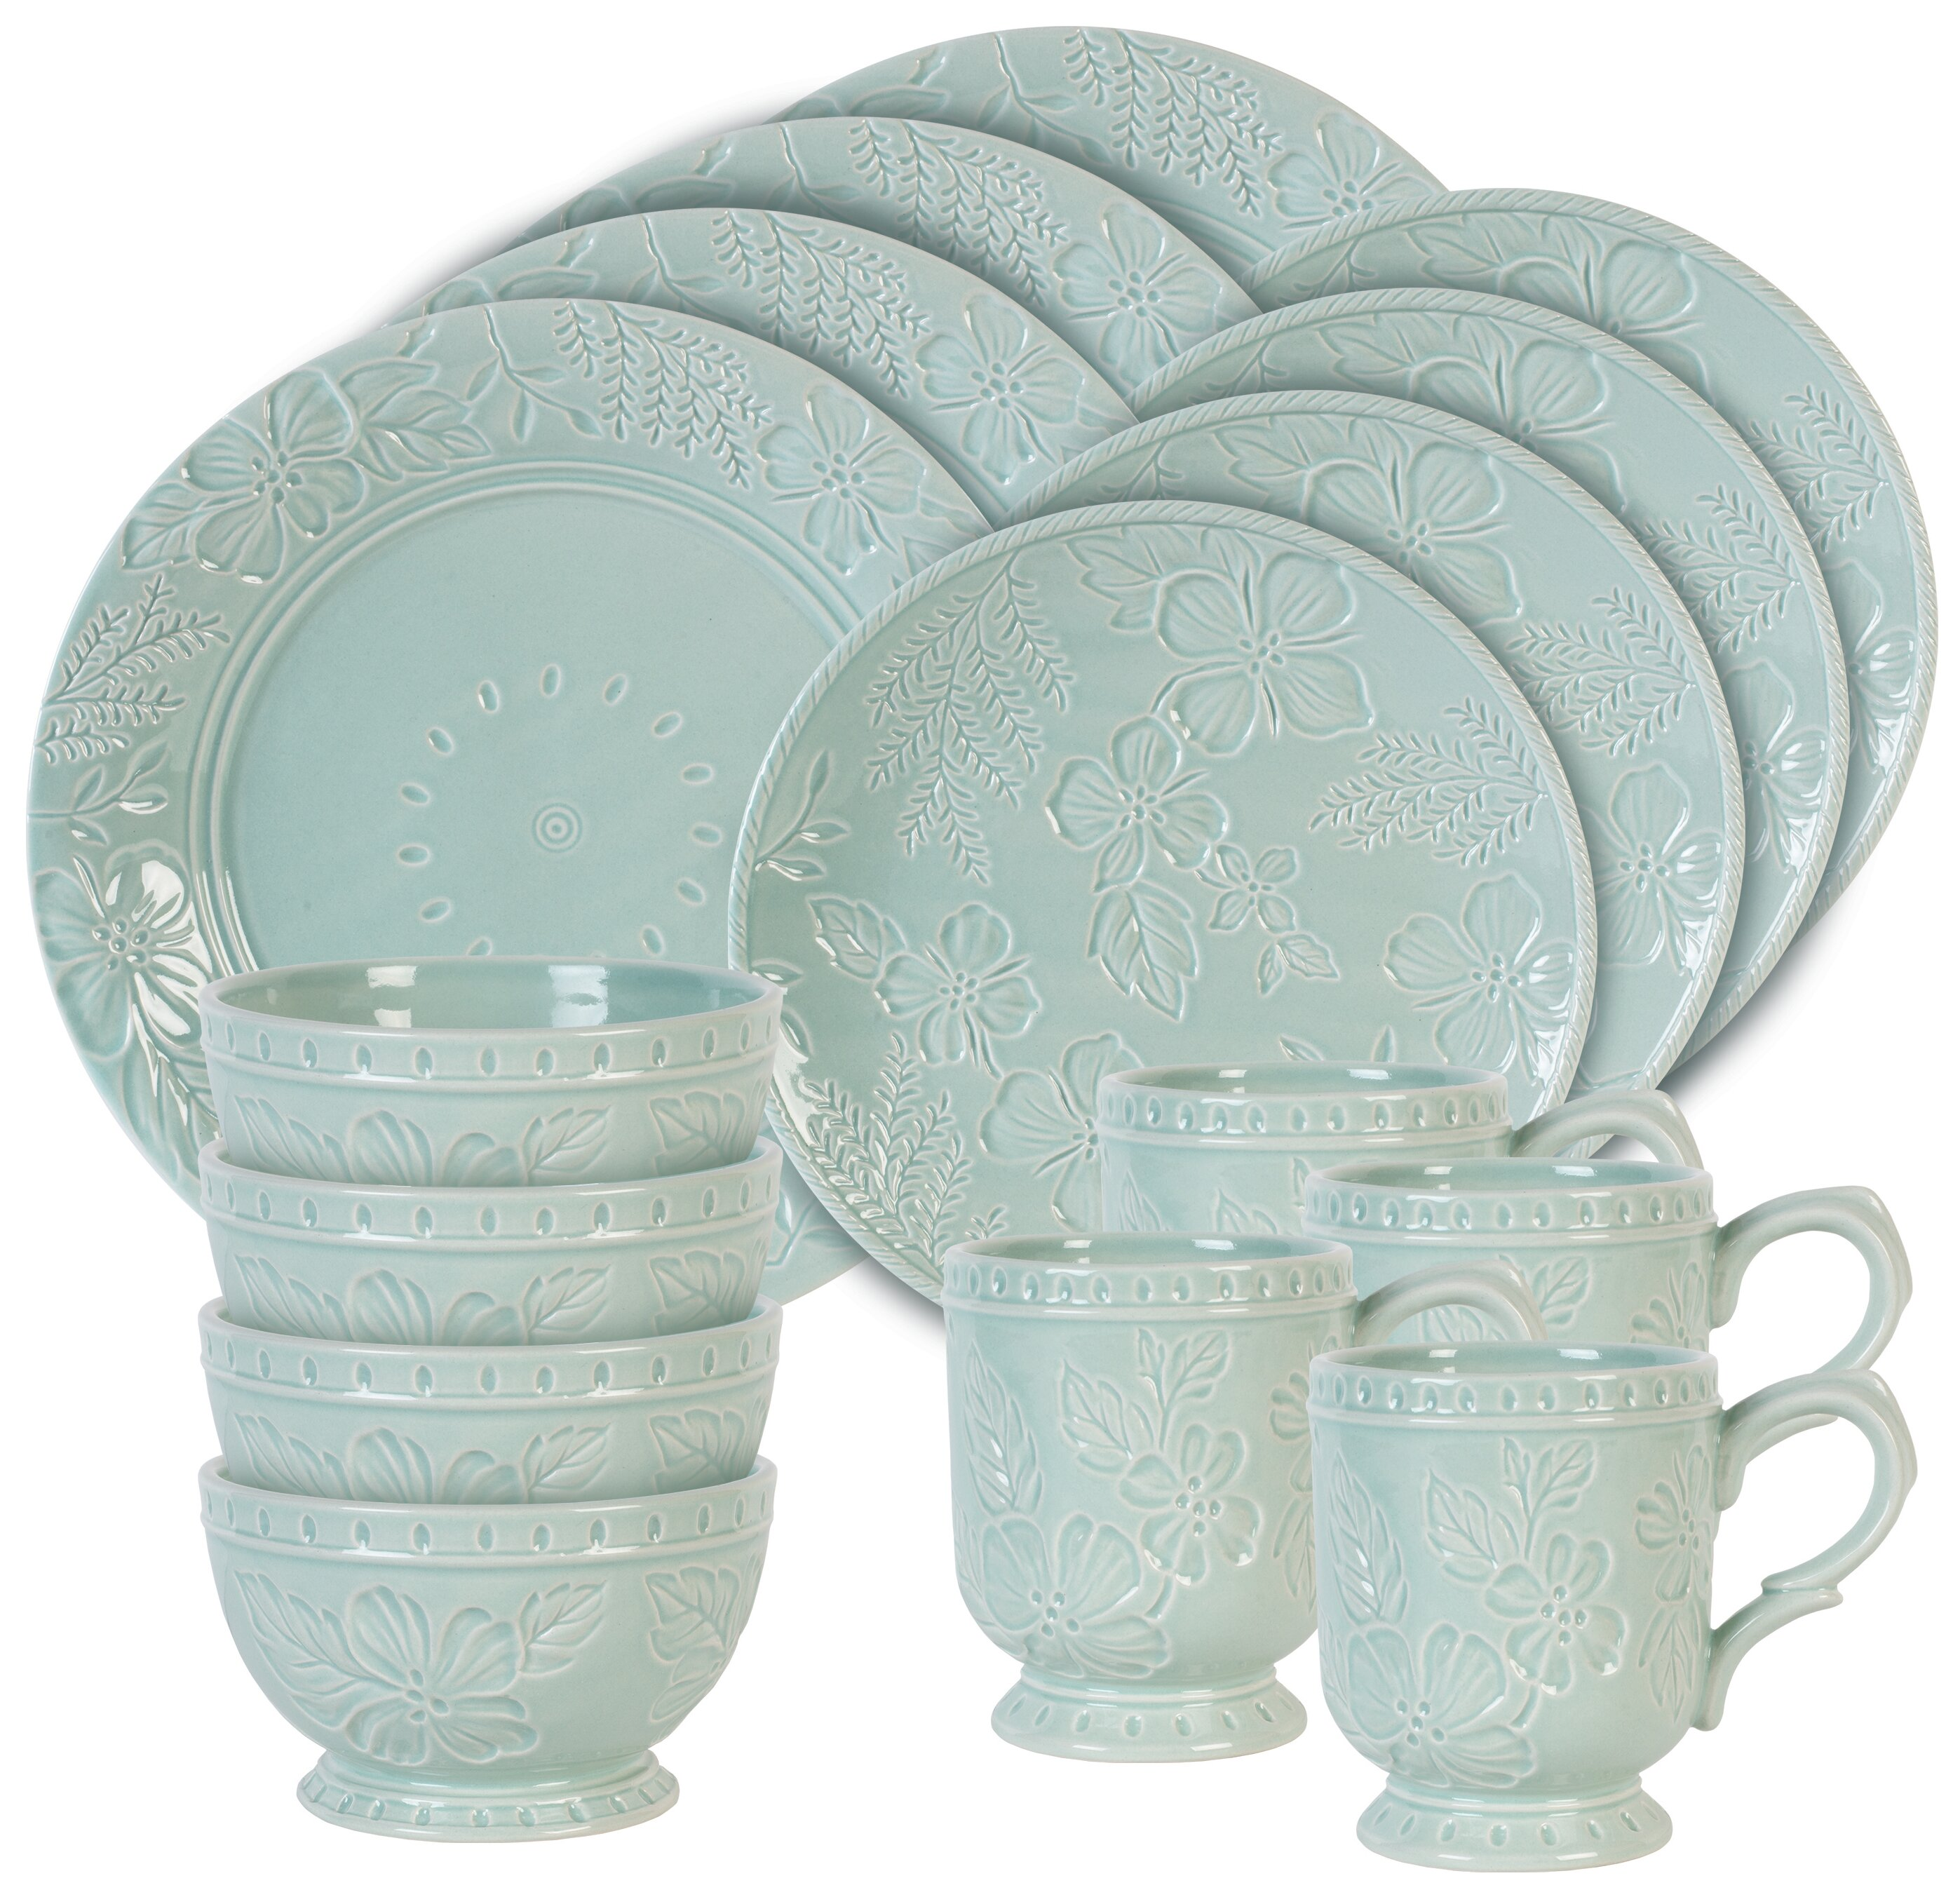 Fitz and Floyd English Garden 16 Piece Dinnerware Set Service for 4 \u0026 Reviews | Wayfair  sc 1 st  Wayfair & Fitz and Floyd English Garden 16 Piece Dinnerware Set Service for 4 ...